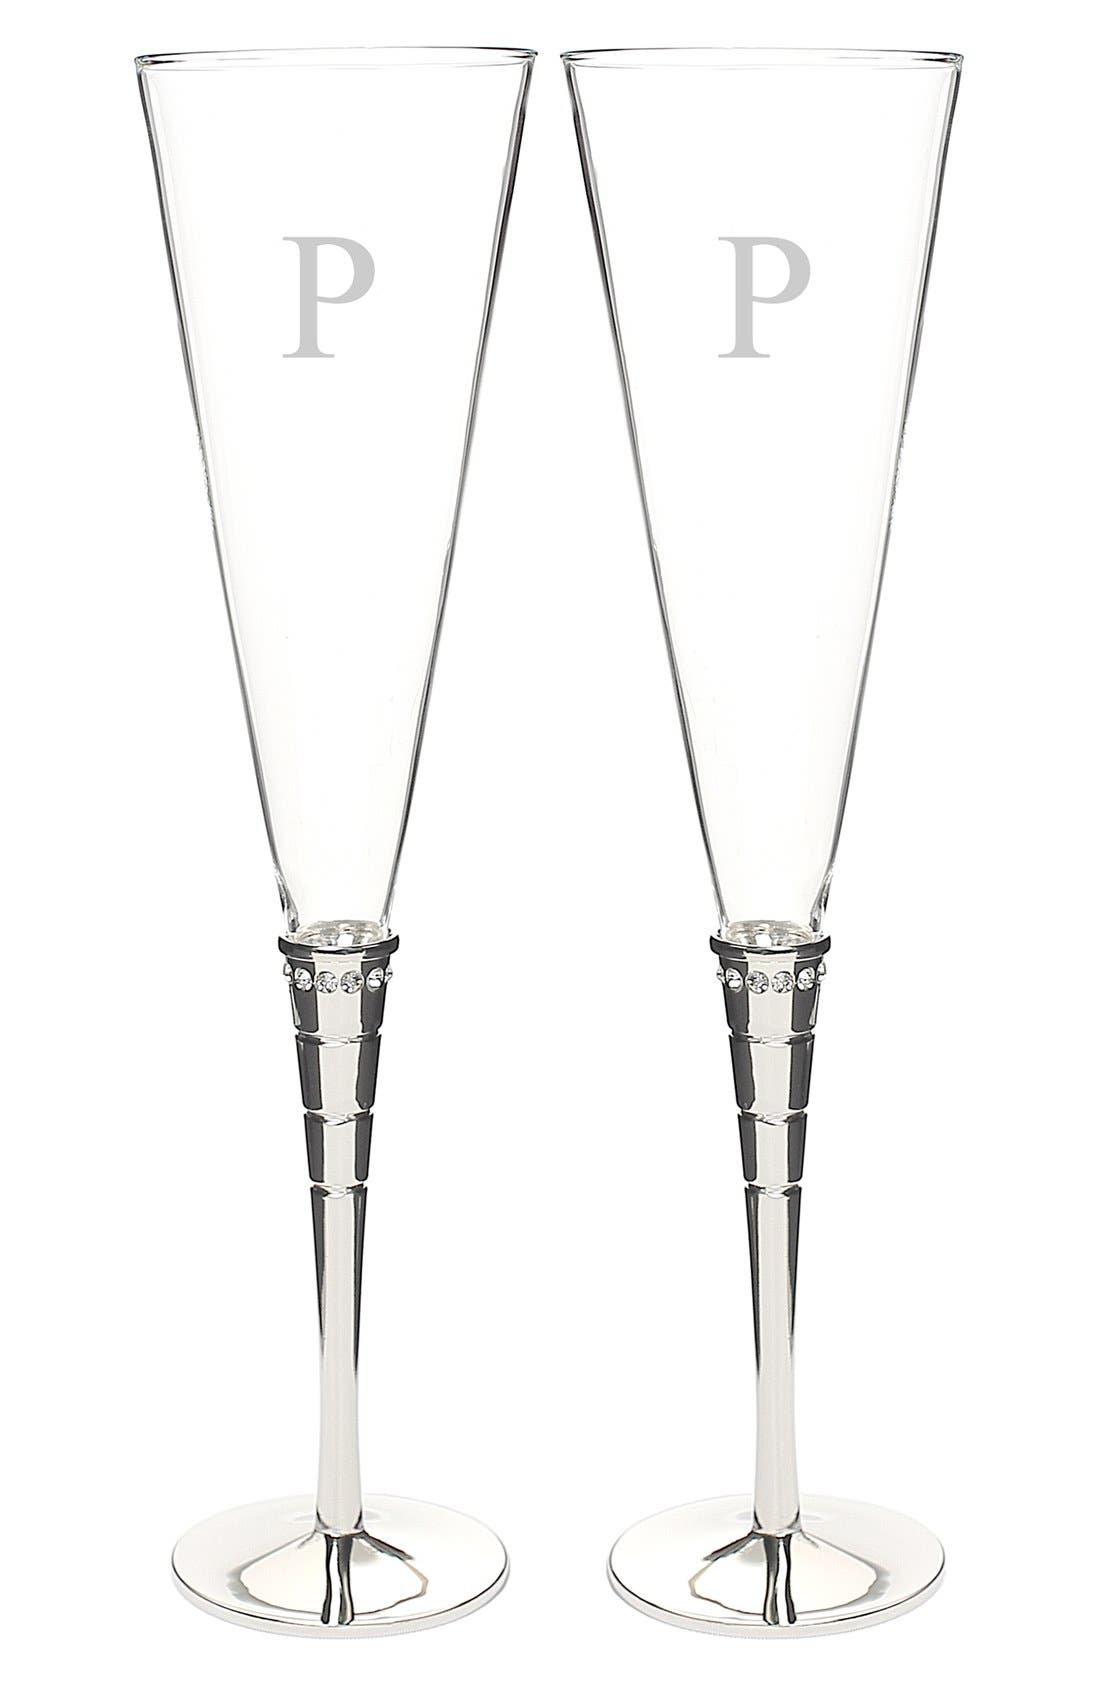 Alternate Image 1 Selected - Cathy's Concepts 'Royal' Personalized Champagne Flutes (Set of 2)